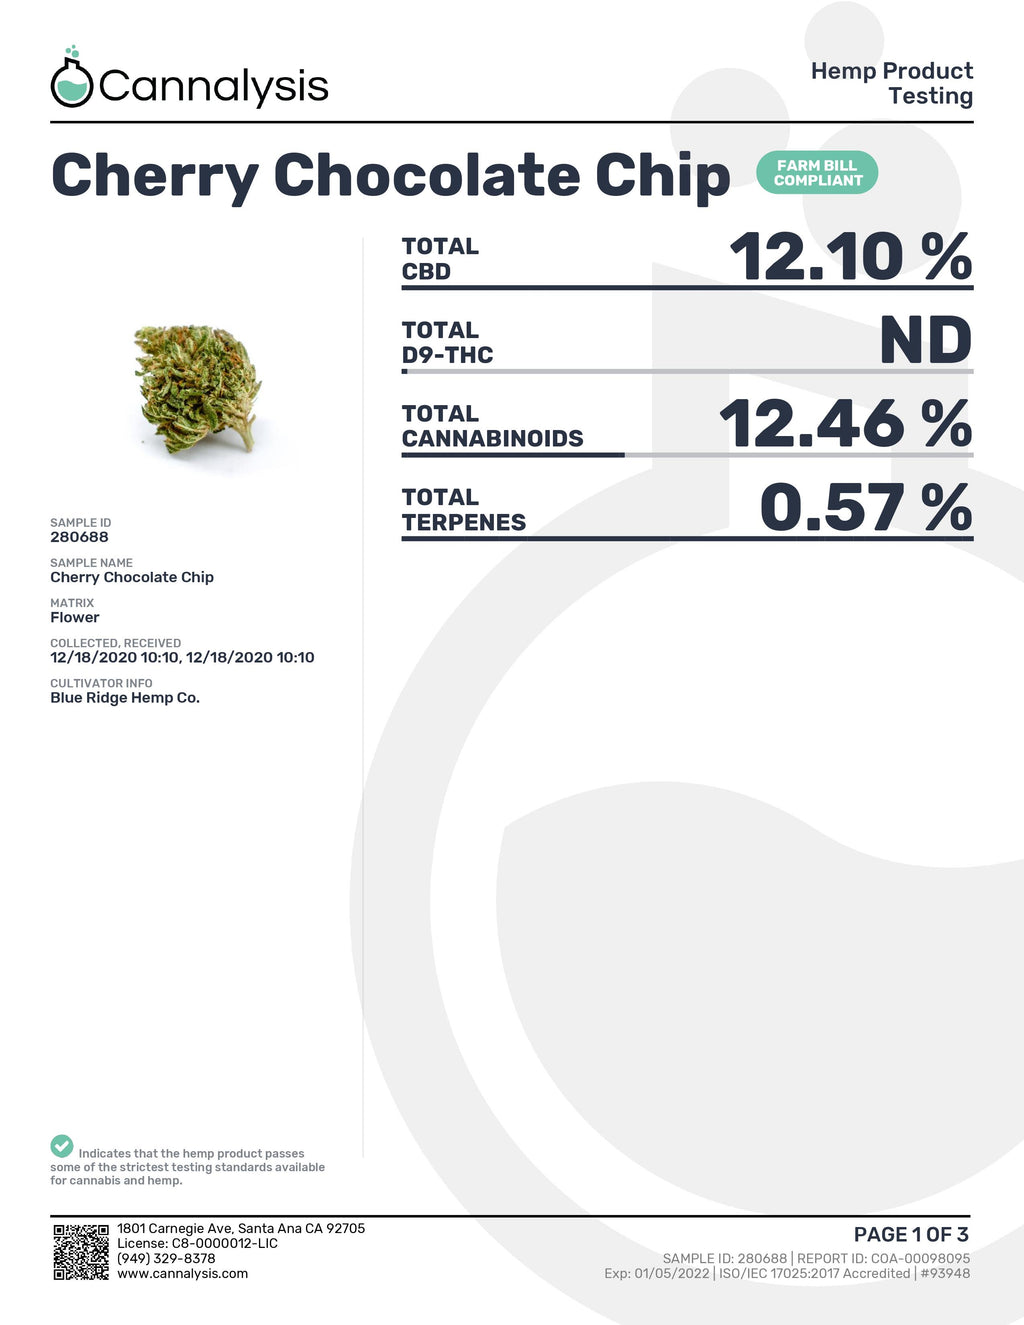 Cherry Chocolate Chip Tastemakers Hemp Exotics (New)